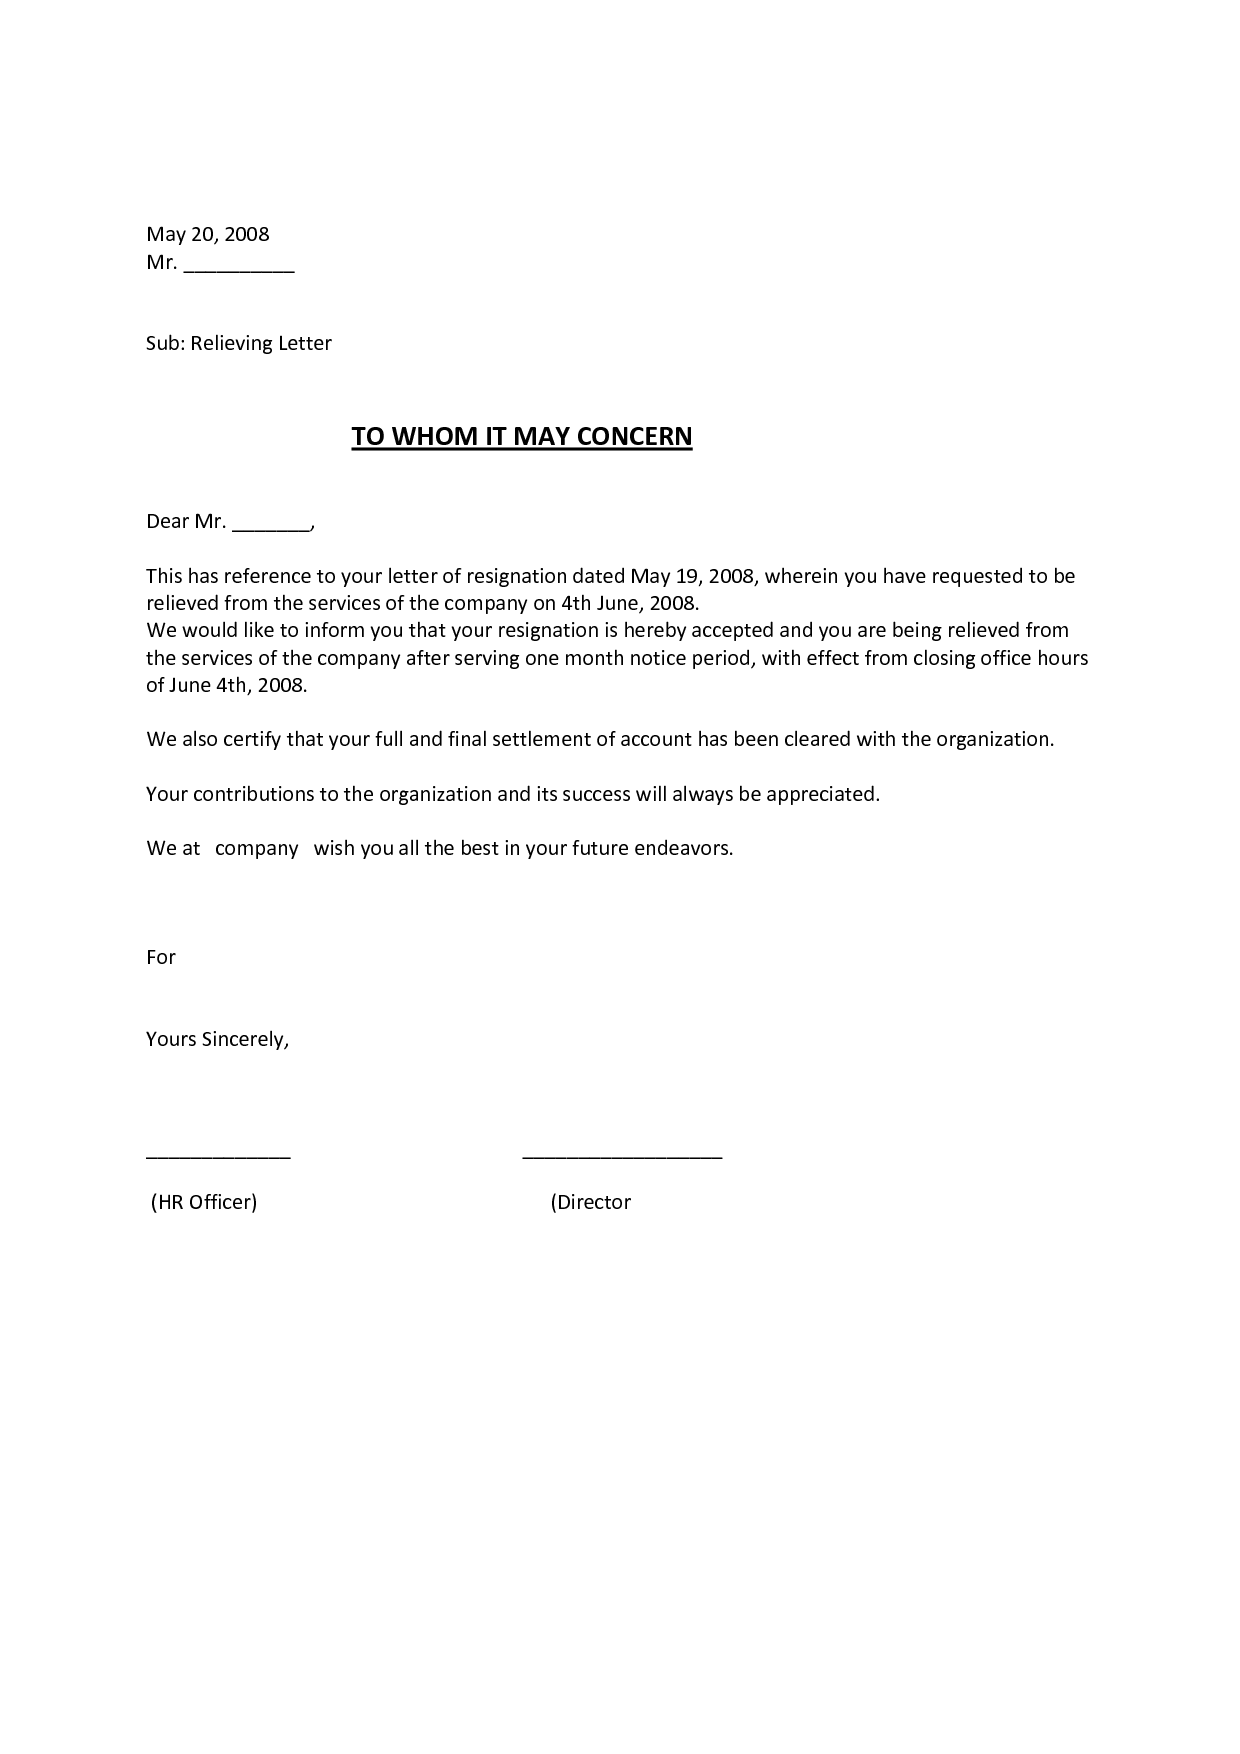 Relieving letter format for employee free download aba employee relieving letter a relieving letter is meant to relieve the employee who is no longer associated with the company thecheapjerseys Images